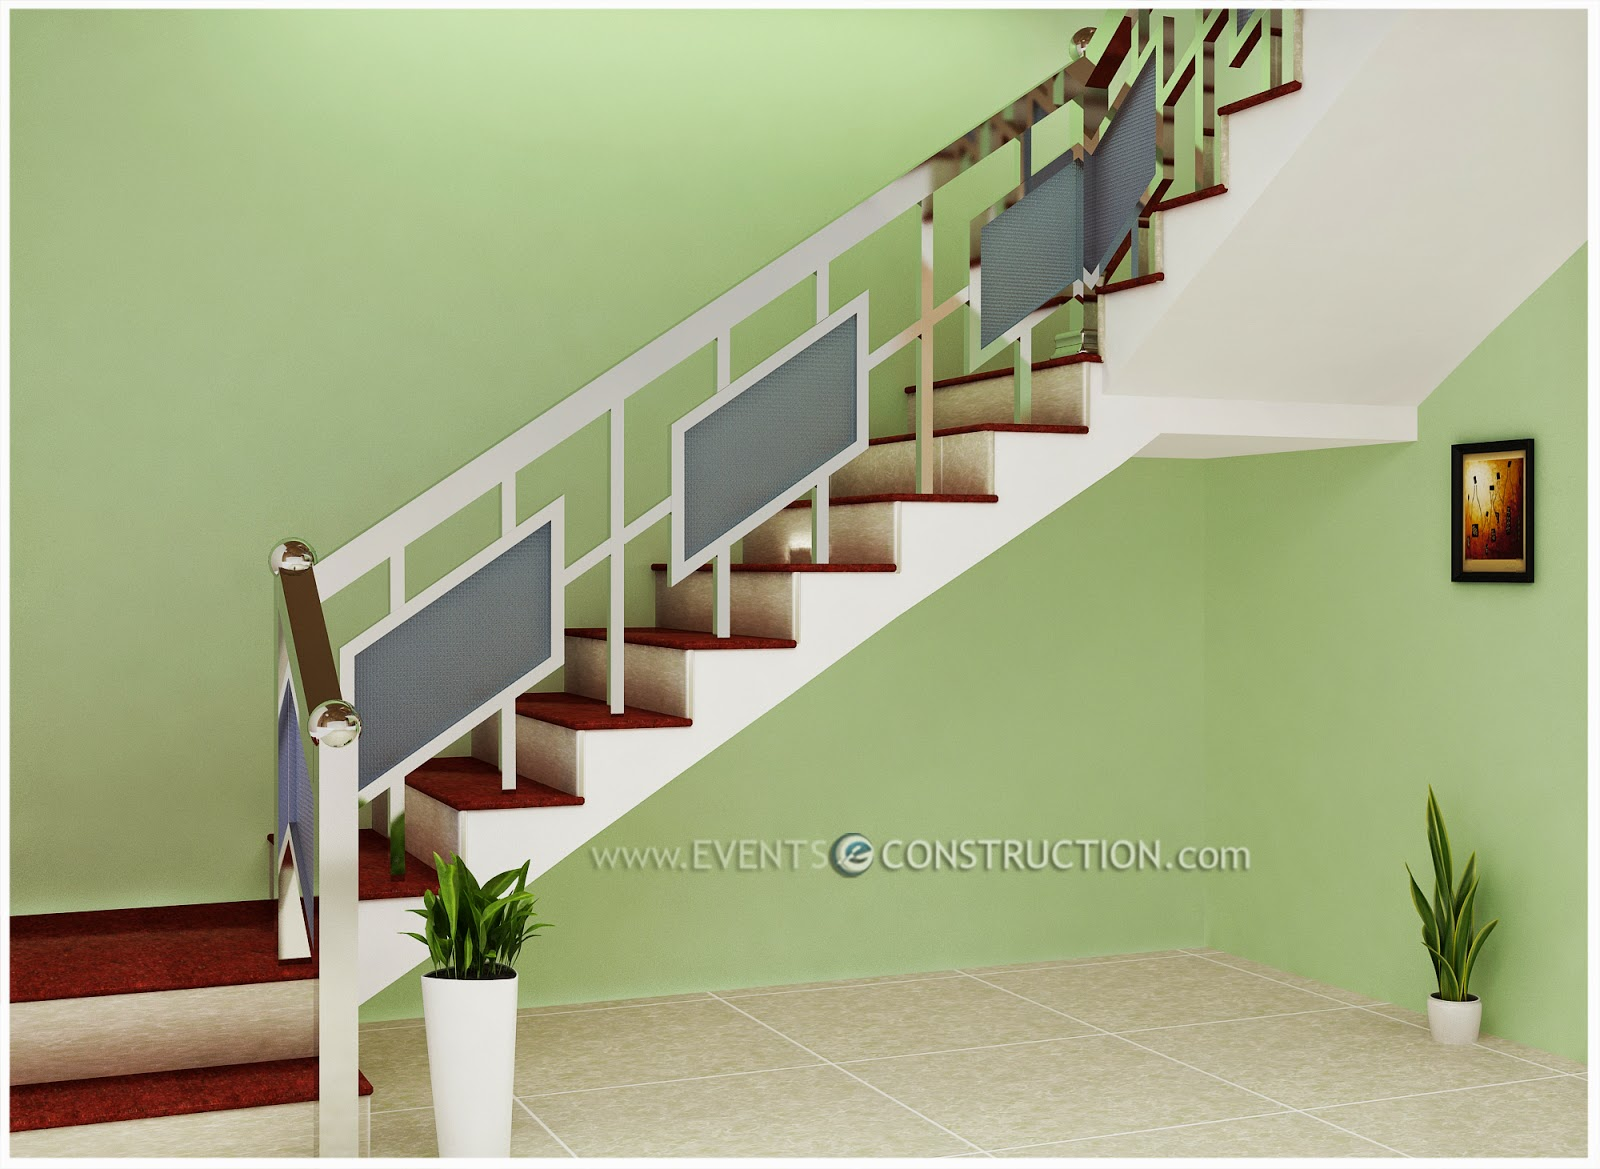 Simple Stairs Design Evens Construction Pvt Ltd Simple Staircase Design